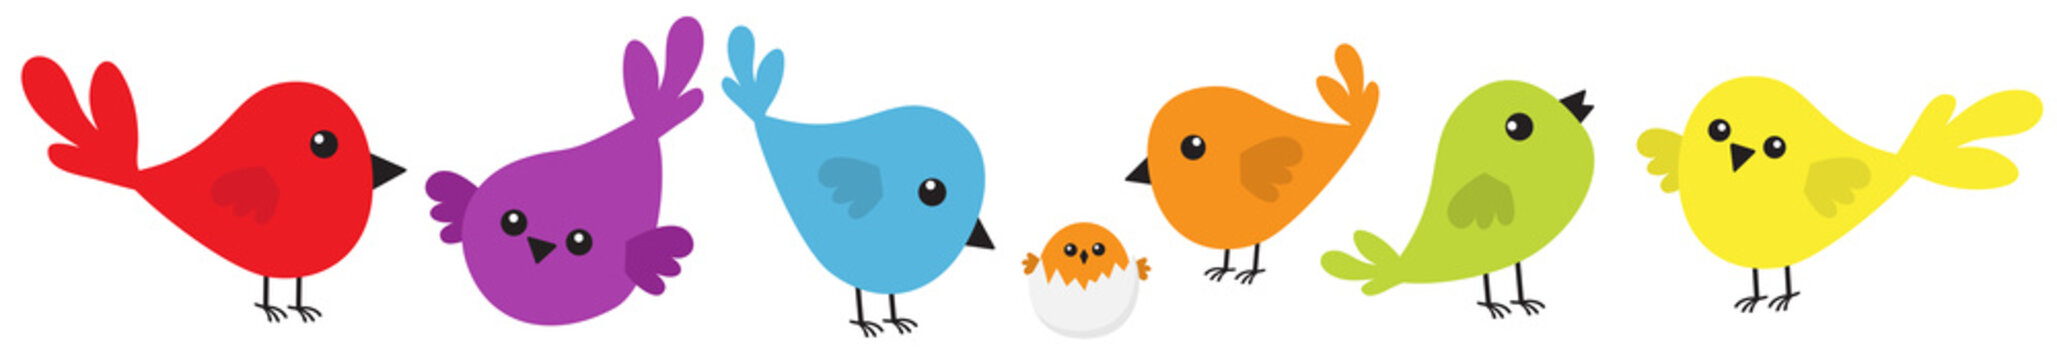 Bird icon set line. Cute cartoon colorful character. Birds baby collection. Decoration element. Singing song. Insect, shell nesting. Flat design. White background. Isolated.